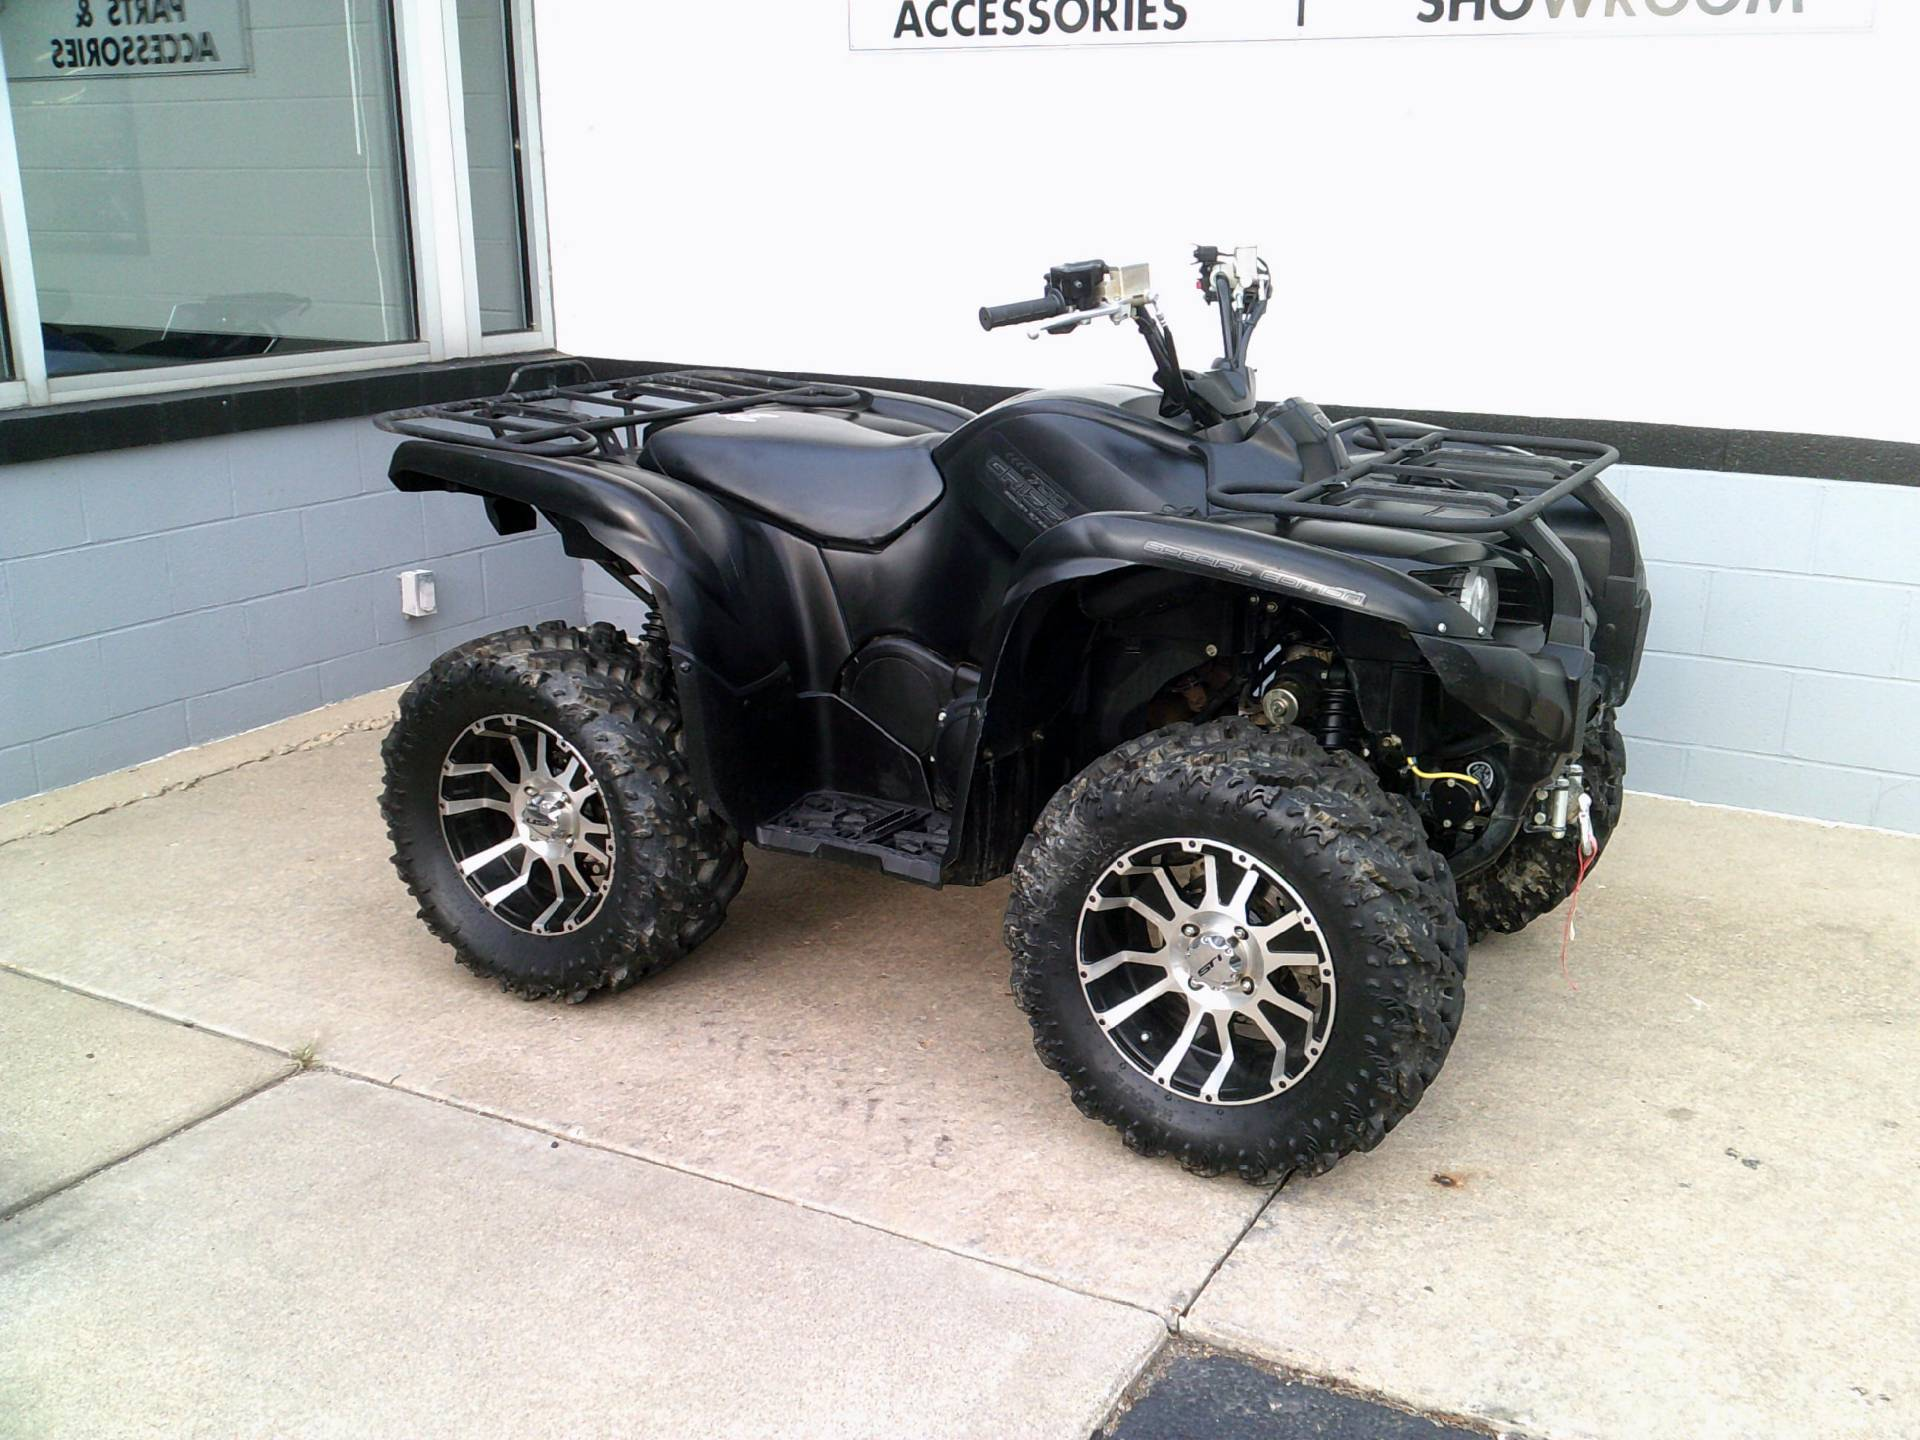 Best Deal On A Yamaha Grizzly